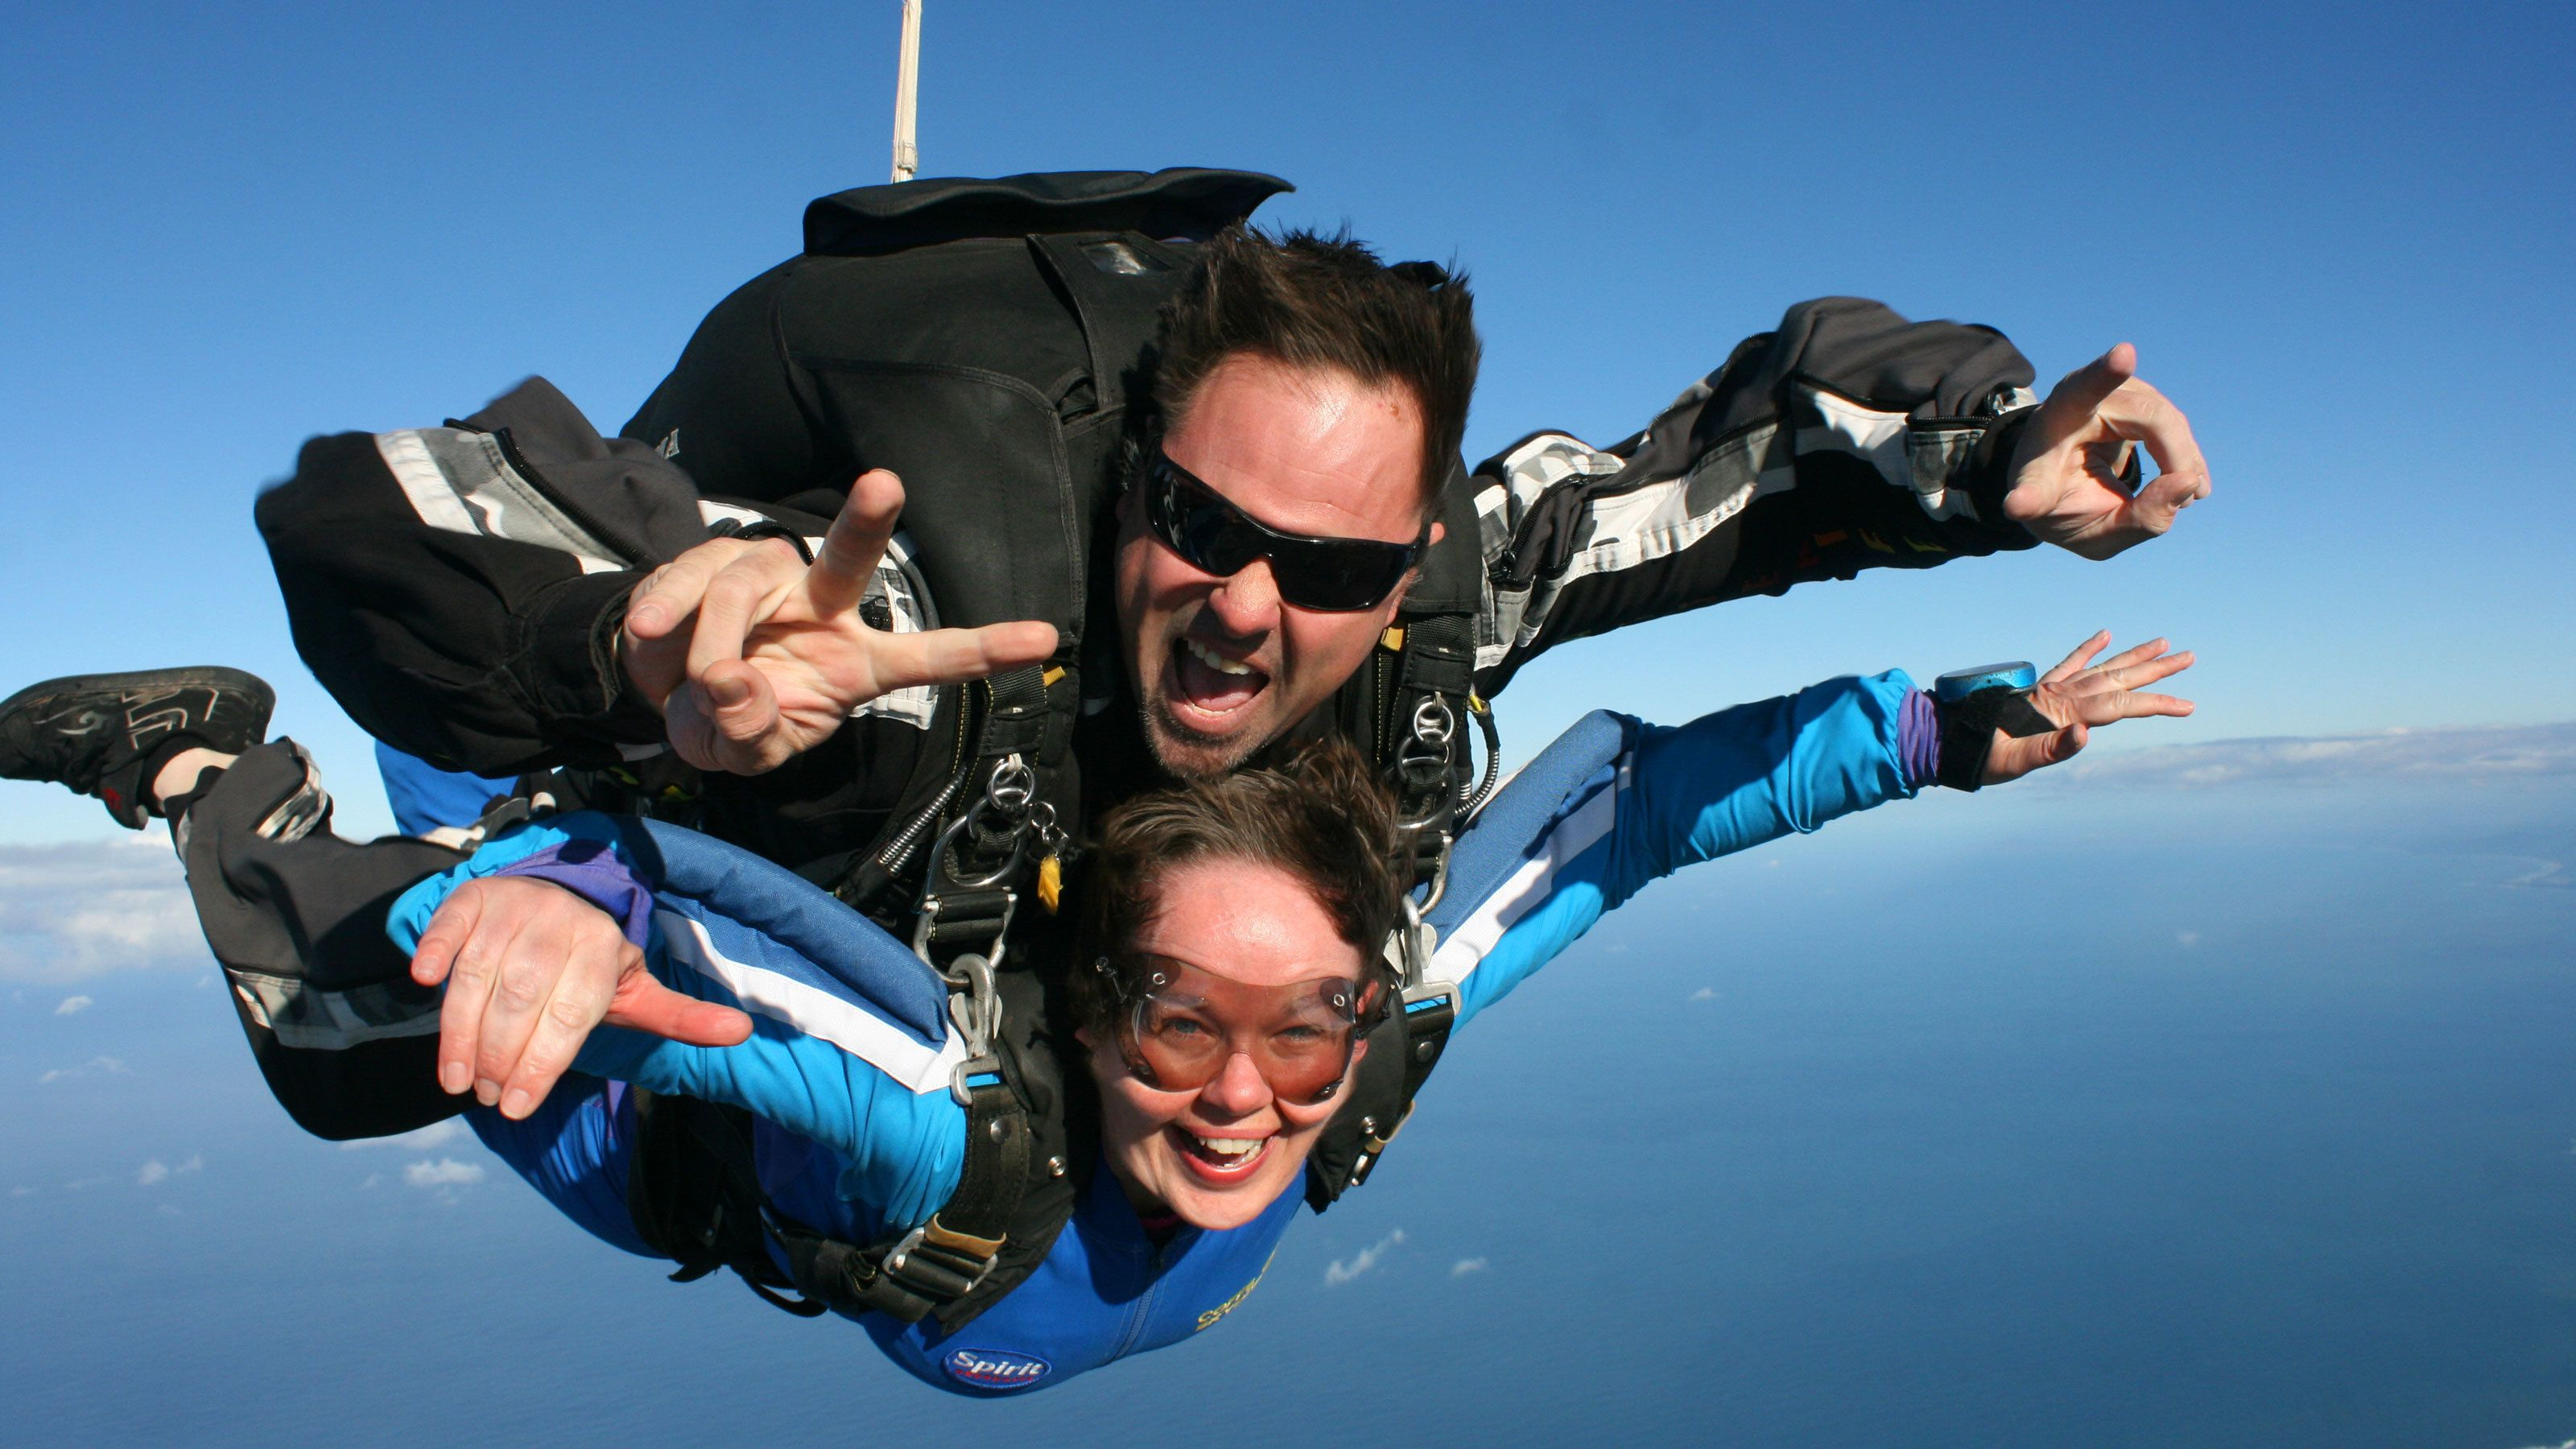 Skydivers fastened together on the over Coffs Harbour in Australia